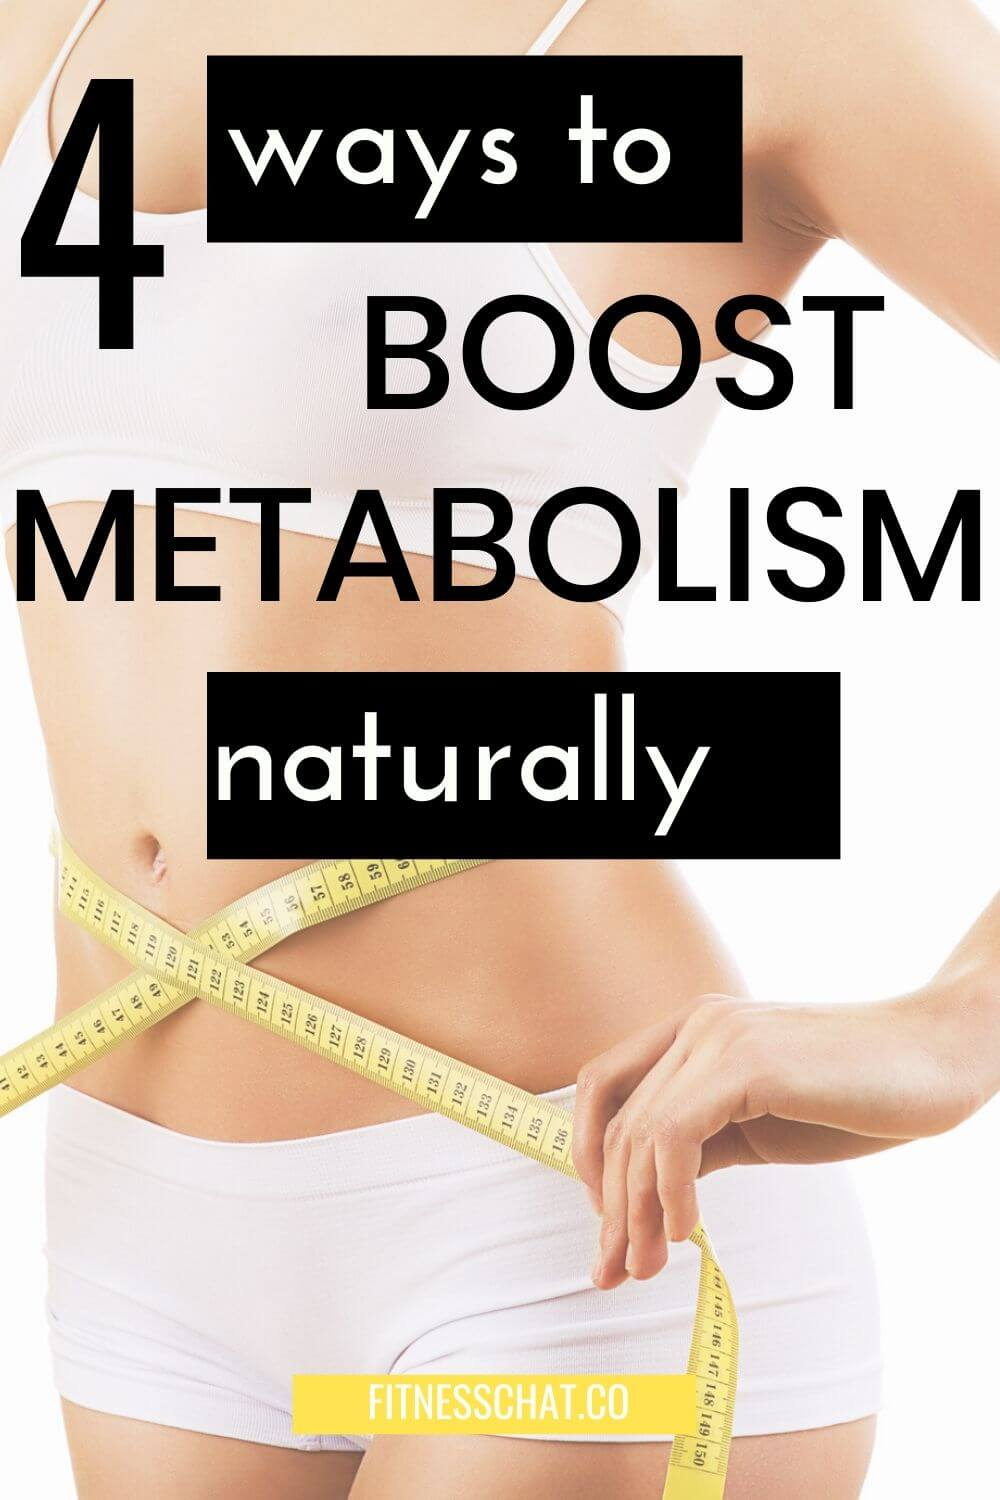 How to Increase Metabolism and Lose Weight